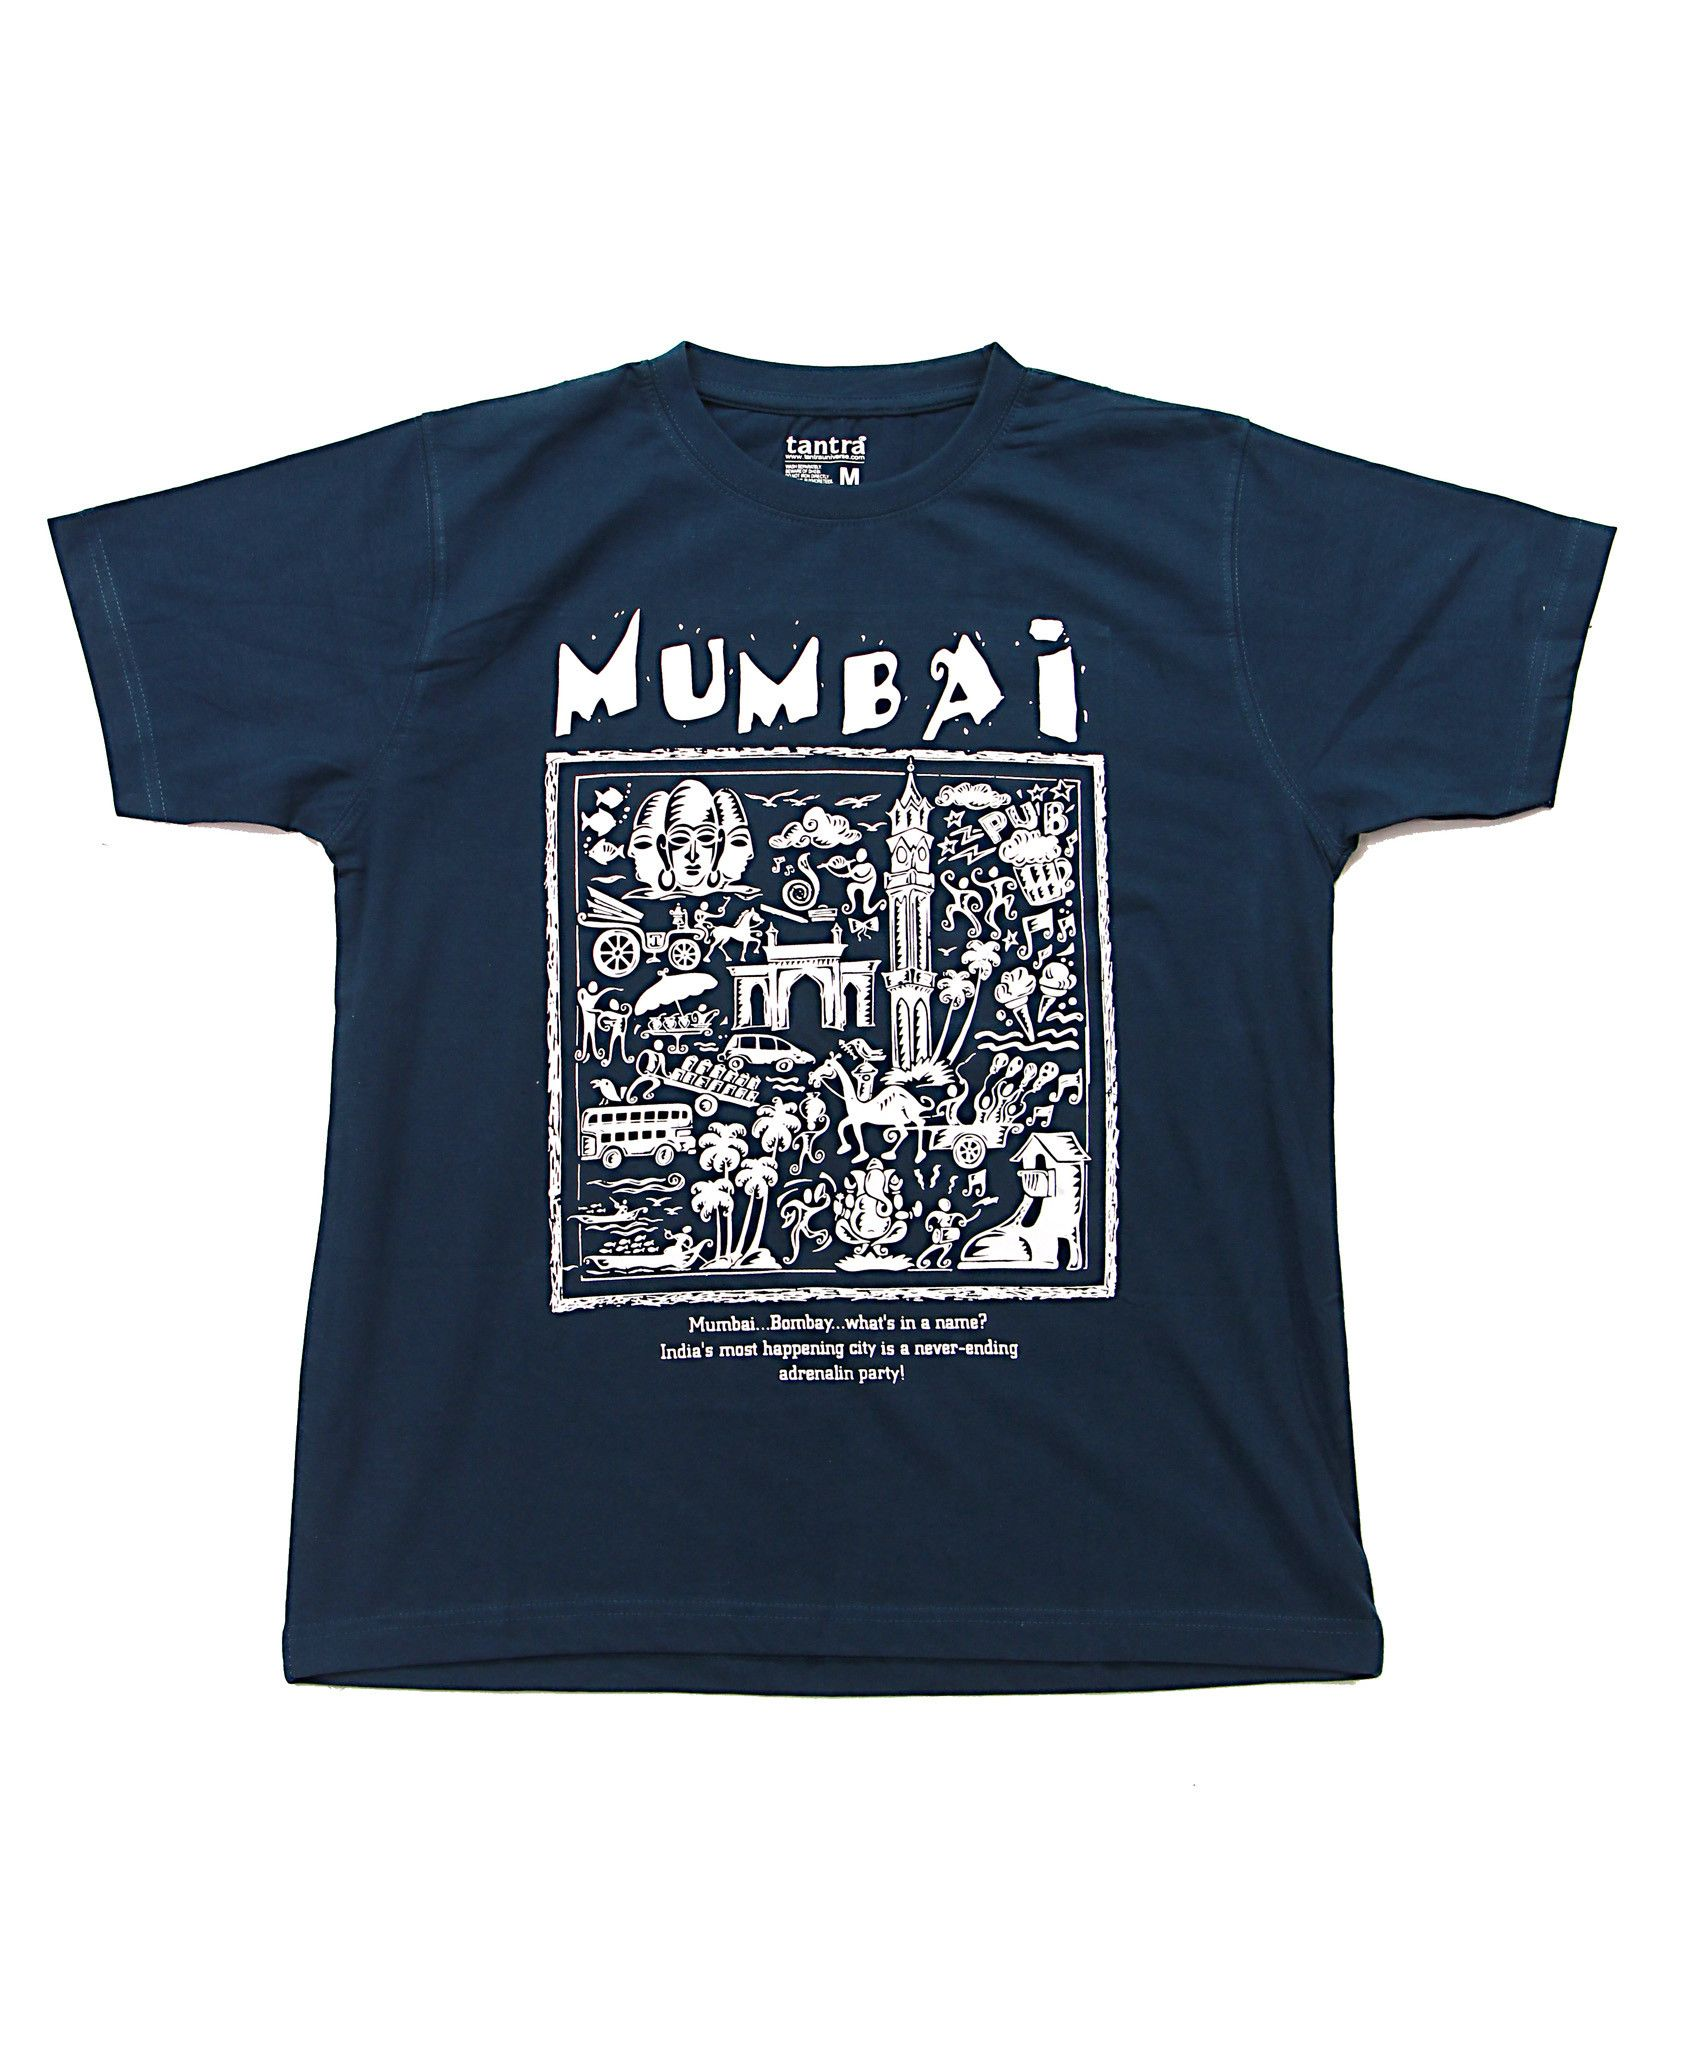 Bombay/Mumbai, Men, Cool TShirt Designs Online Graphic T Shirts ...